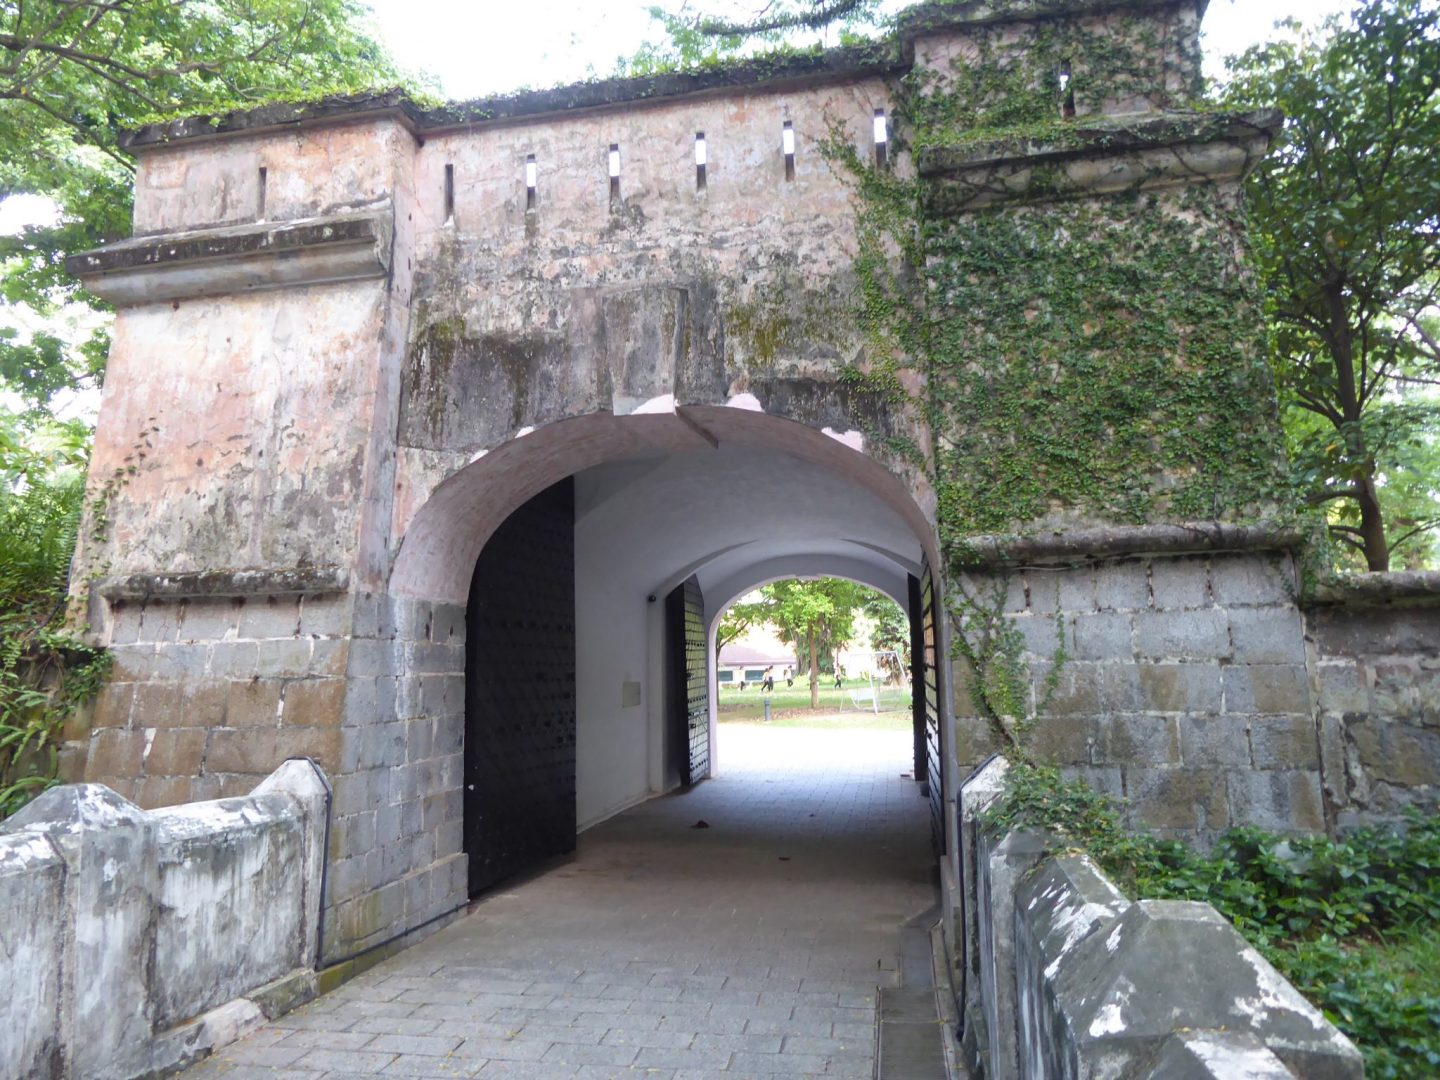 The remaining Fort Canning gate - leftover from the old British fort - Singapore